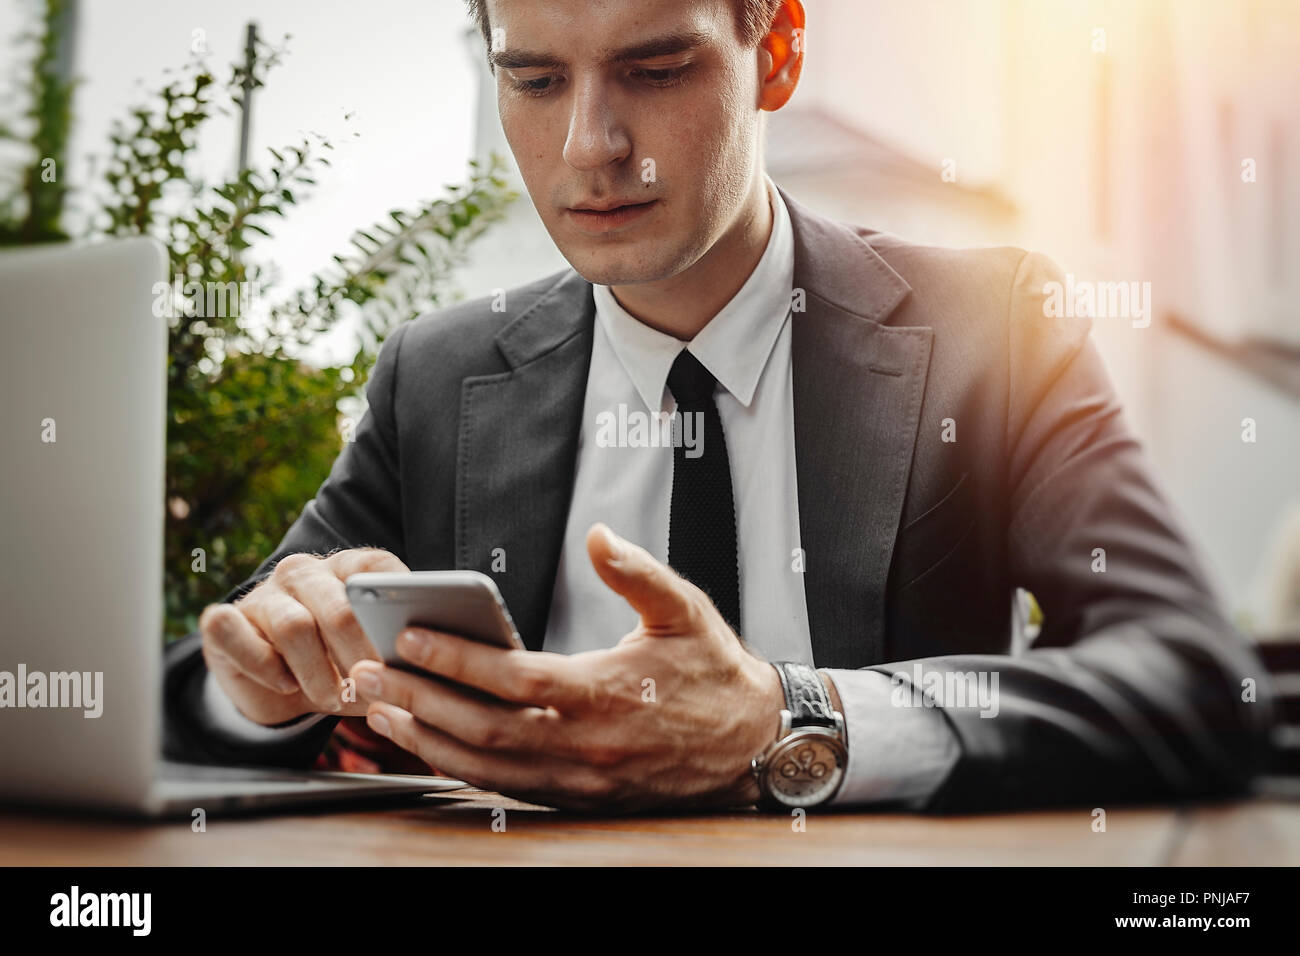 Close up of businessman looking at screen of mobile phone at street cafe. - Stock Image